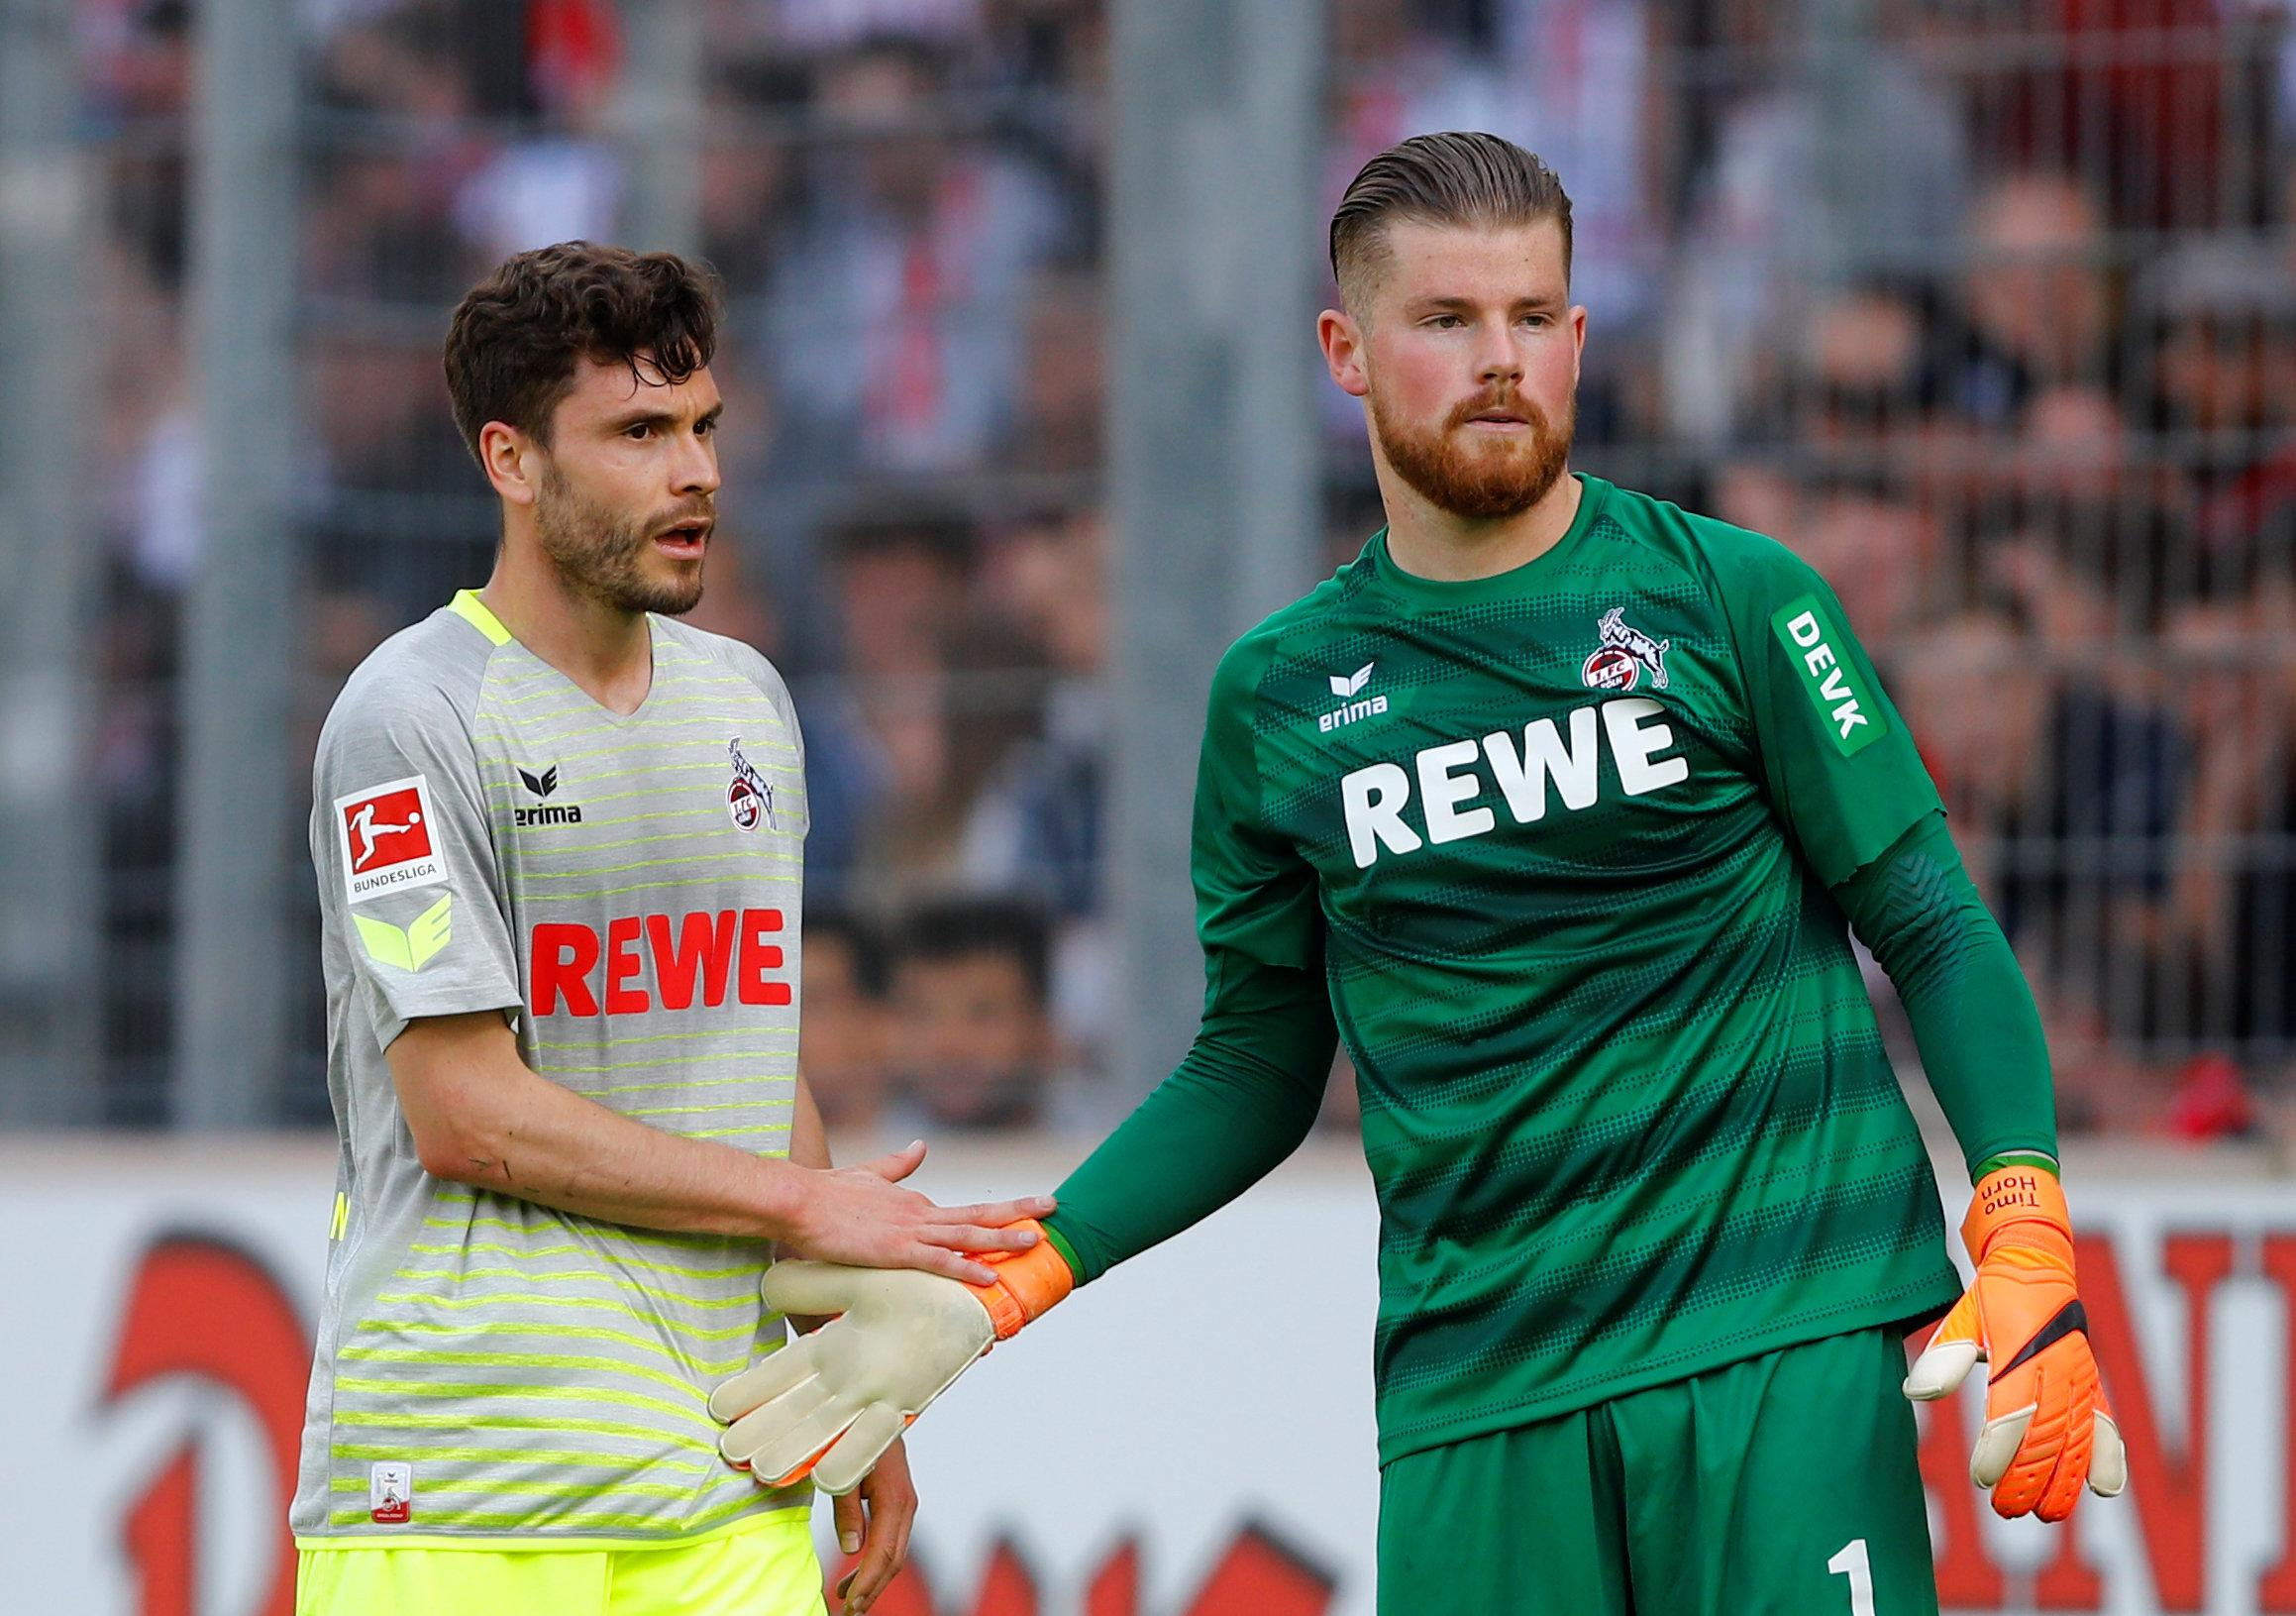 Hector and Horn will both play in Bundesliga 2 next season